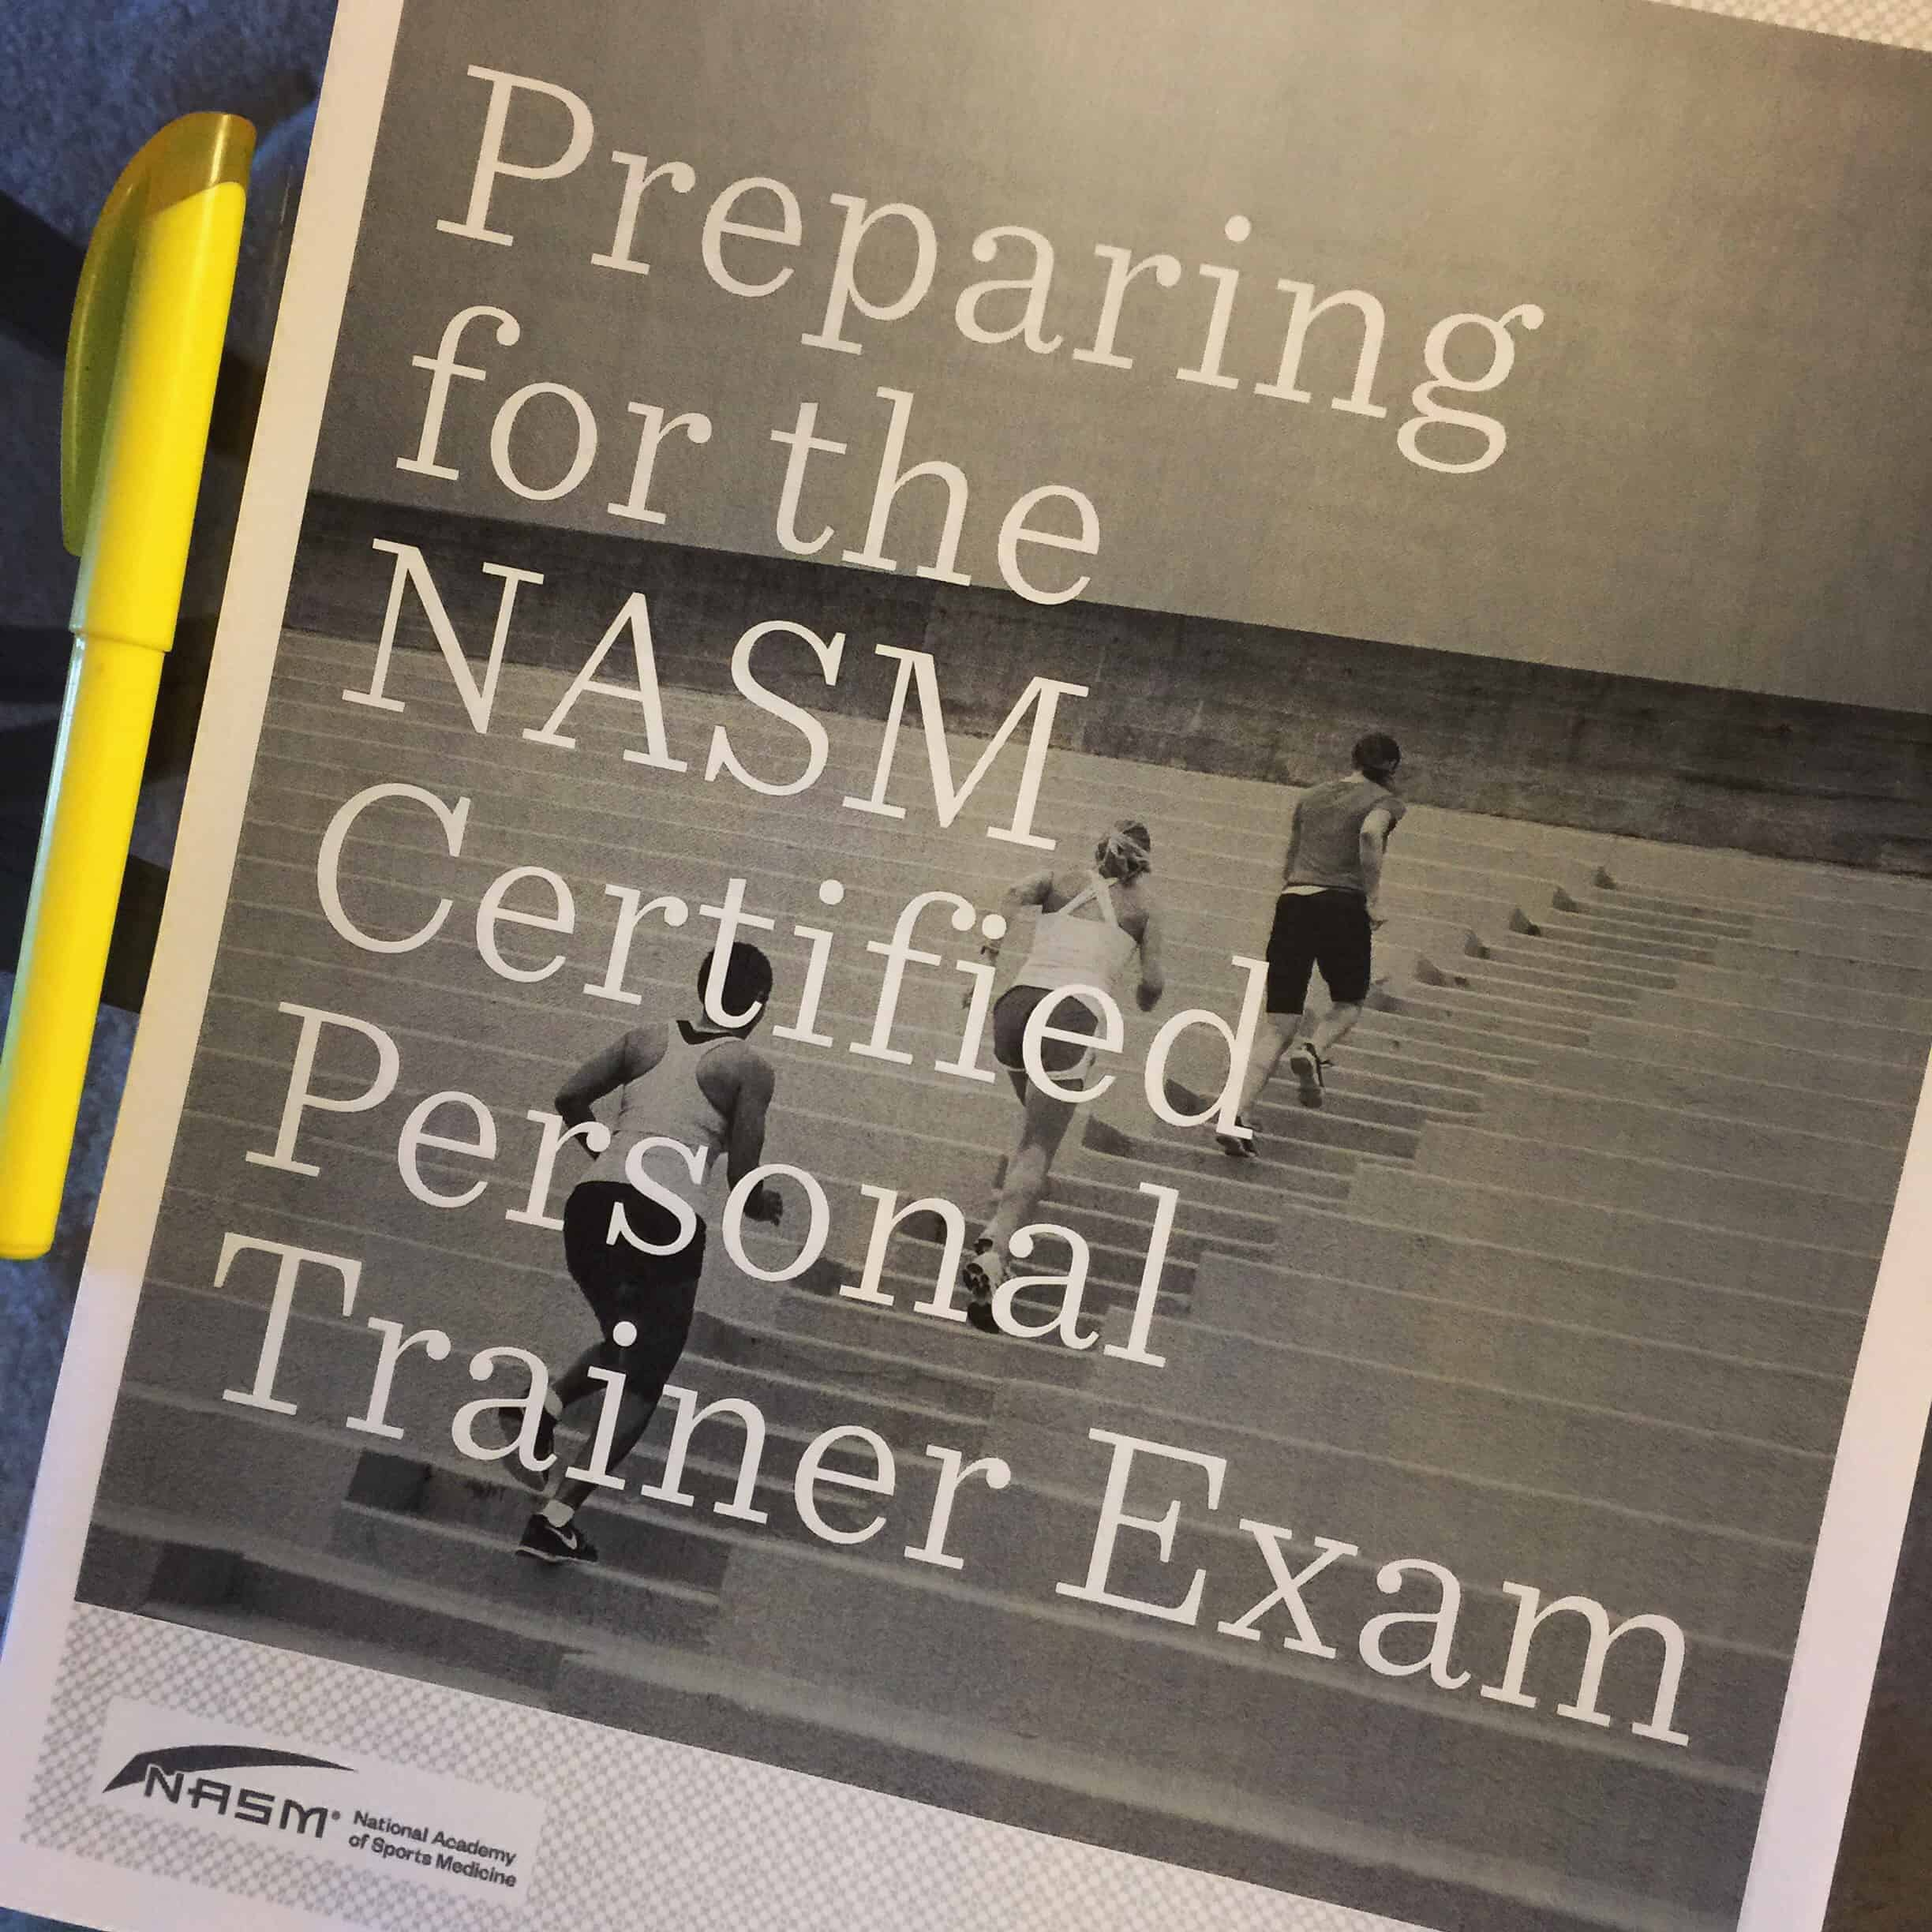 Passing The Nasm Certified Personal Training Exam Erins Inside Job